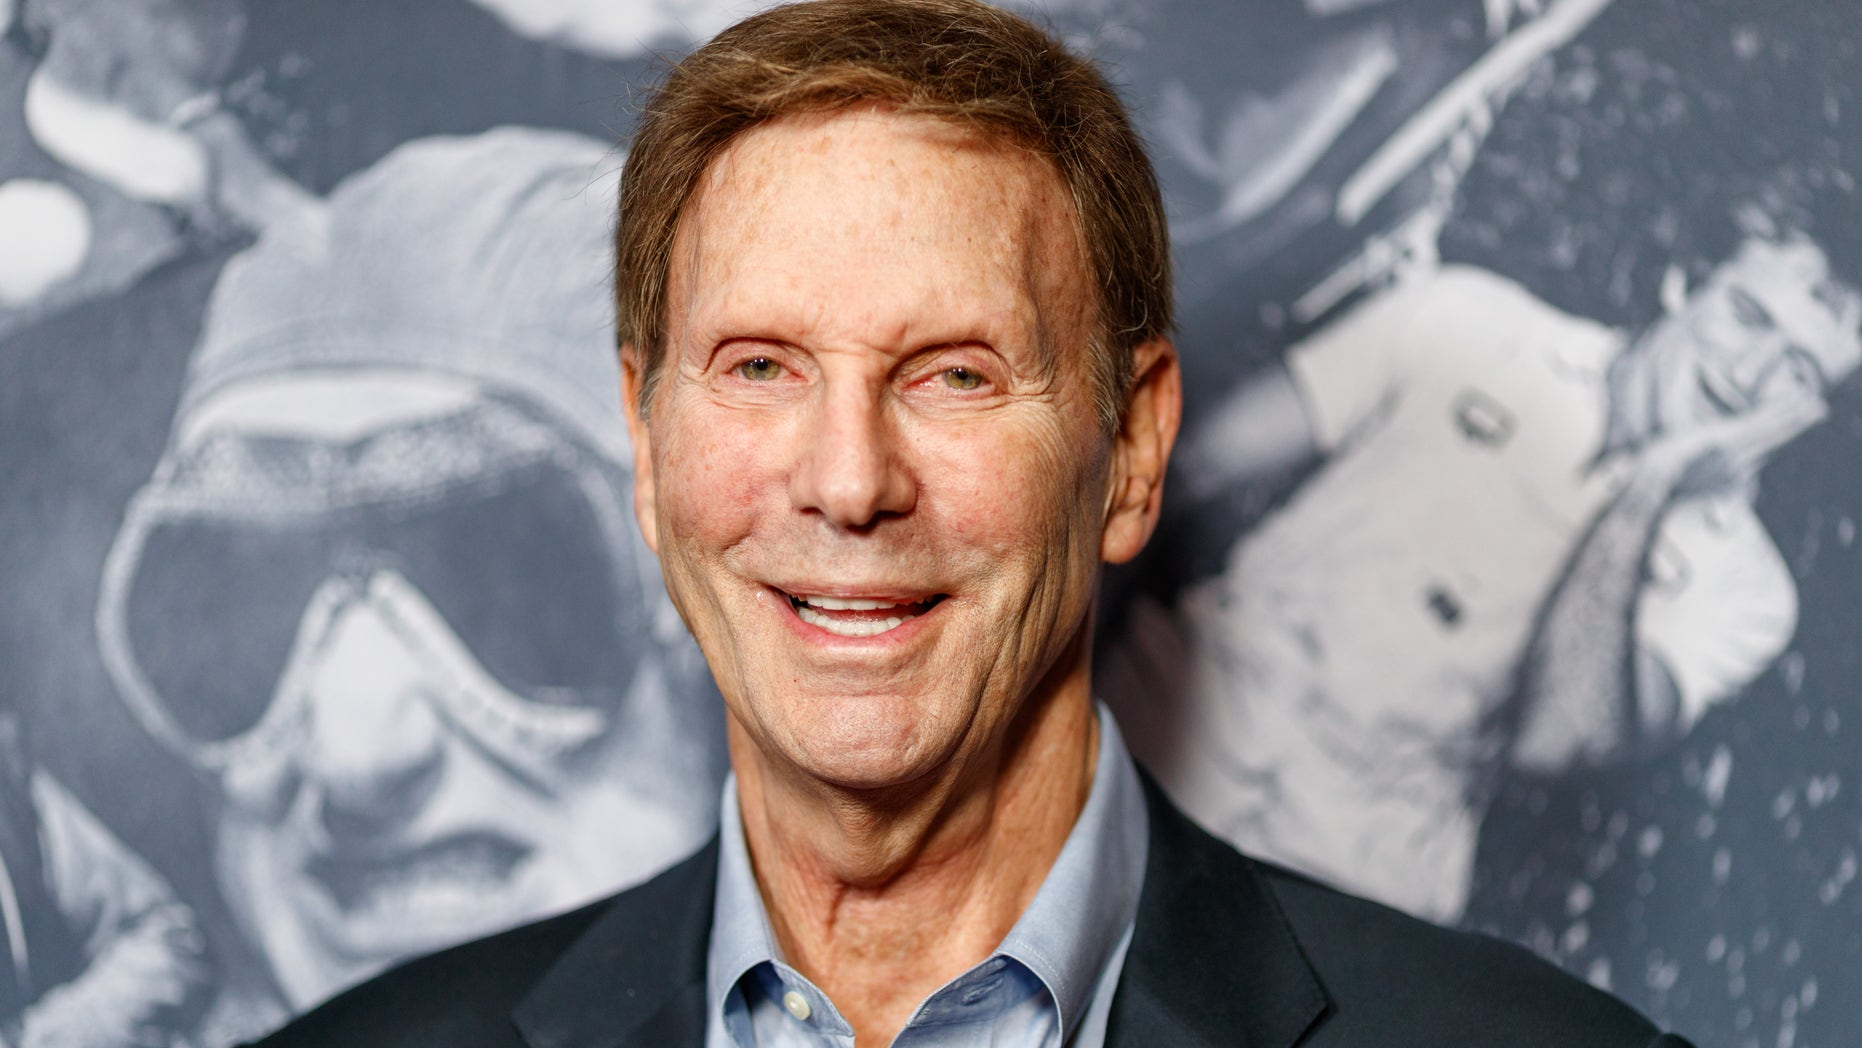 Actor Bob Einstein, star of 'Curb Your Enthusiasm' and many other credits, died at age 76